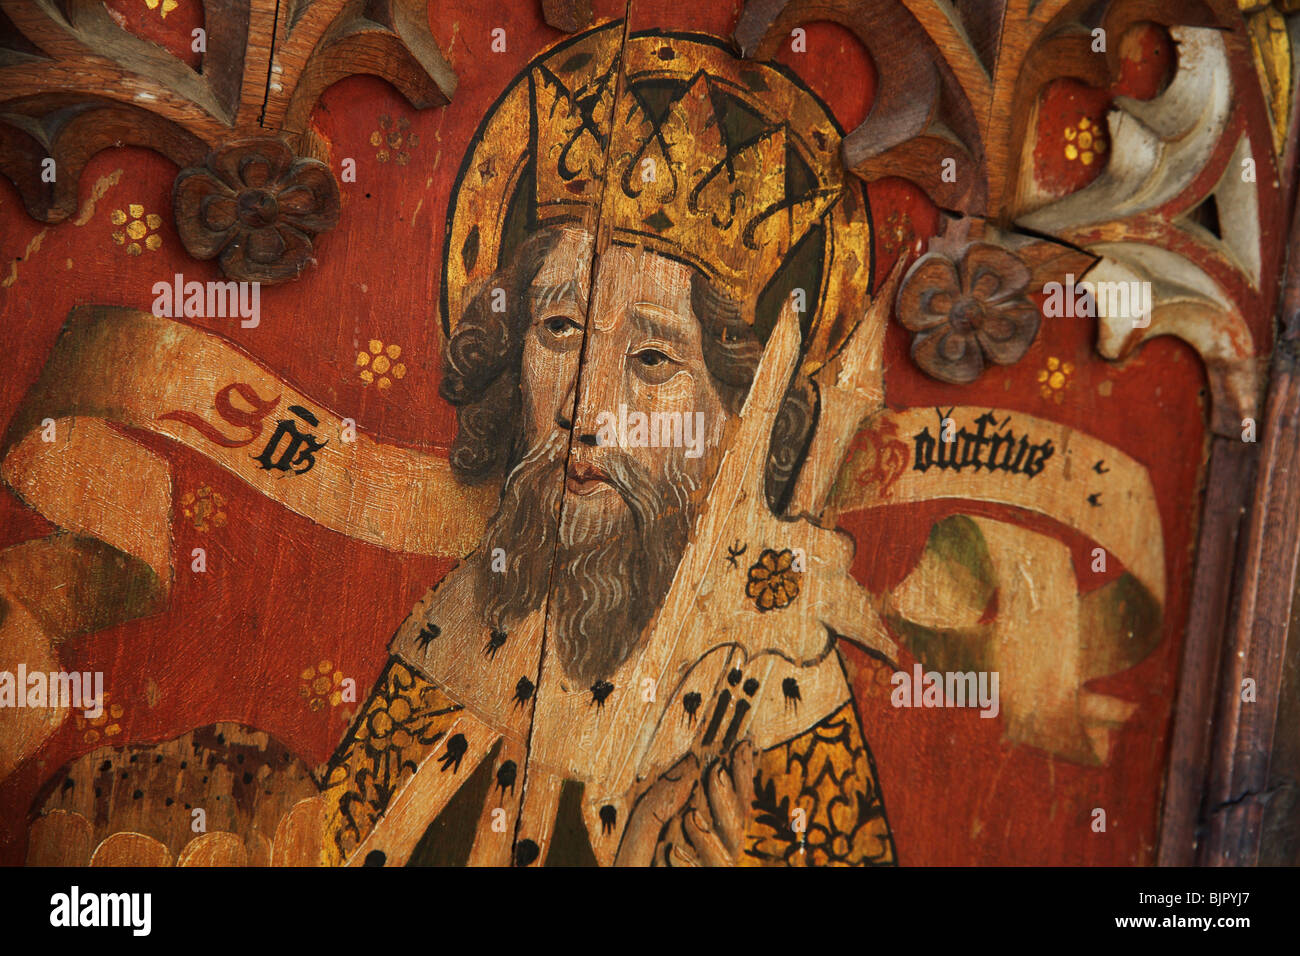 Painted Rood Screen depicting Saint Olaf, St Michael and All Angels Church, Barton Turf, Norfolk - Stock Image